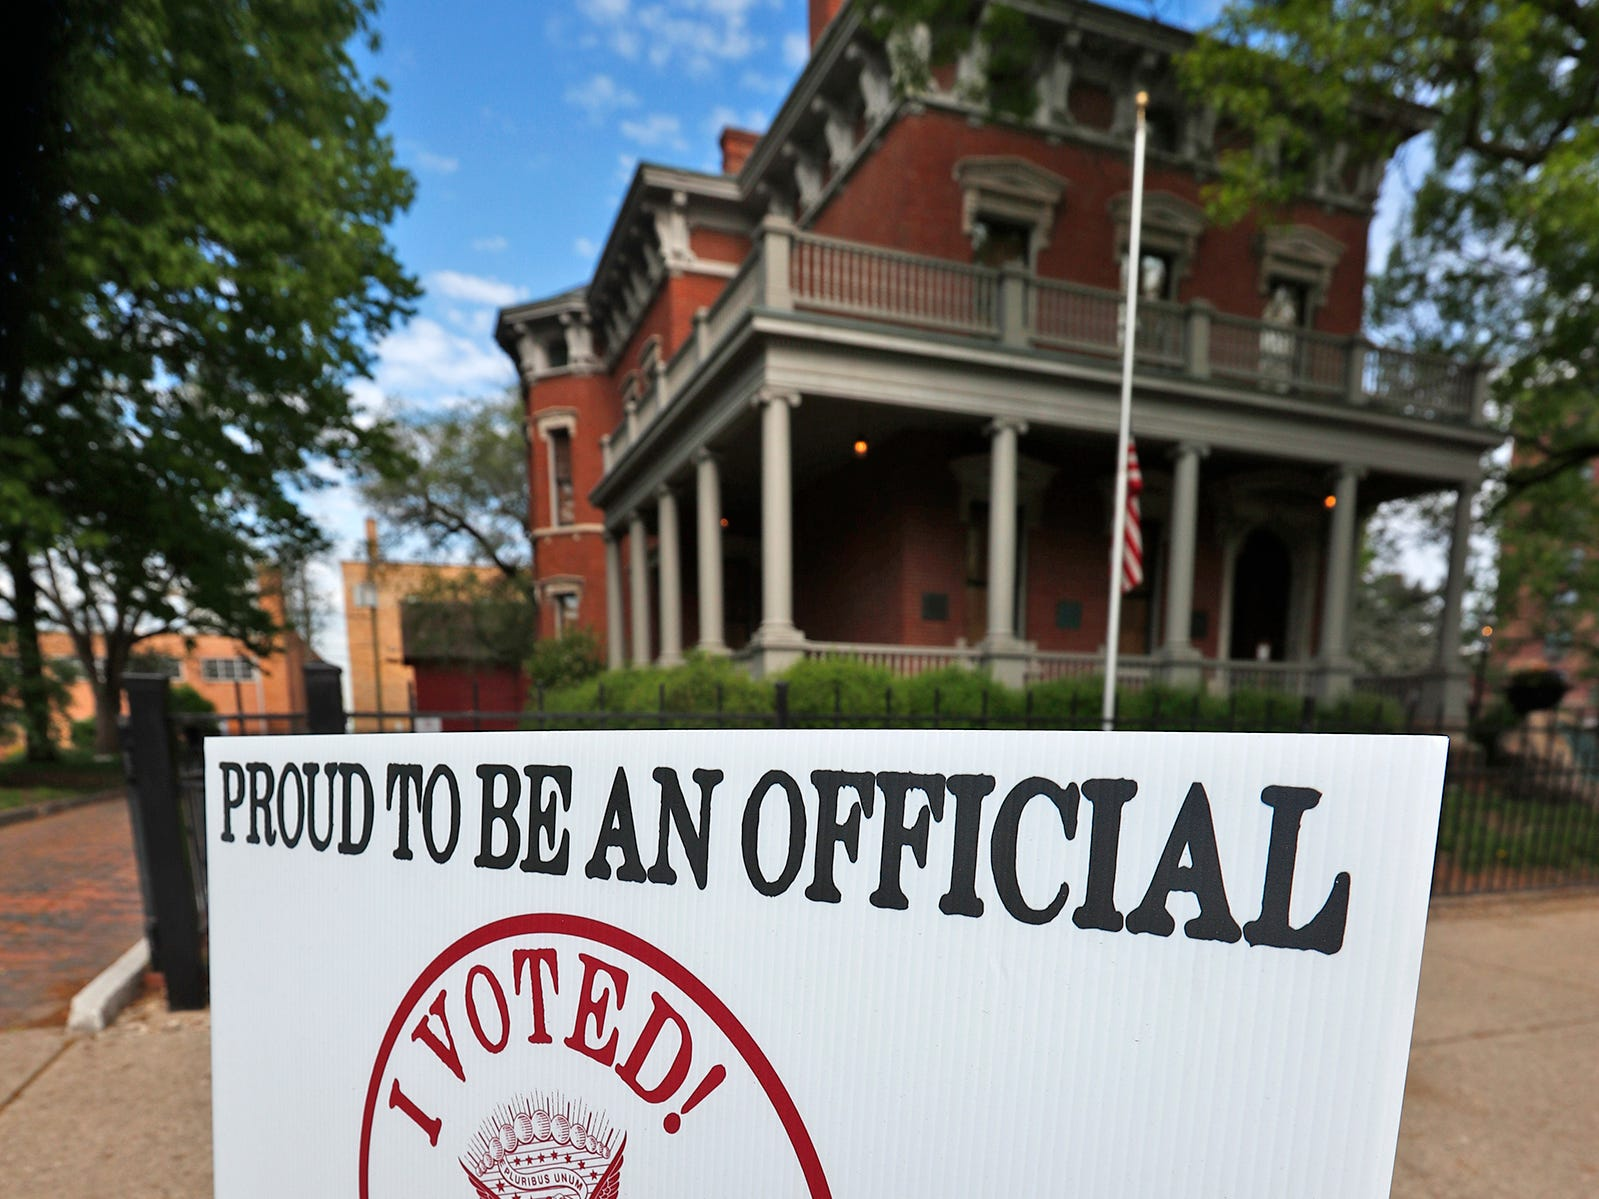 President Benjamin Harrison Presidential Site is a voting center, Tuesday, May 7, 2019.  As a center, anyone who lives in Marion County can vote here.